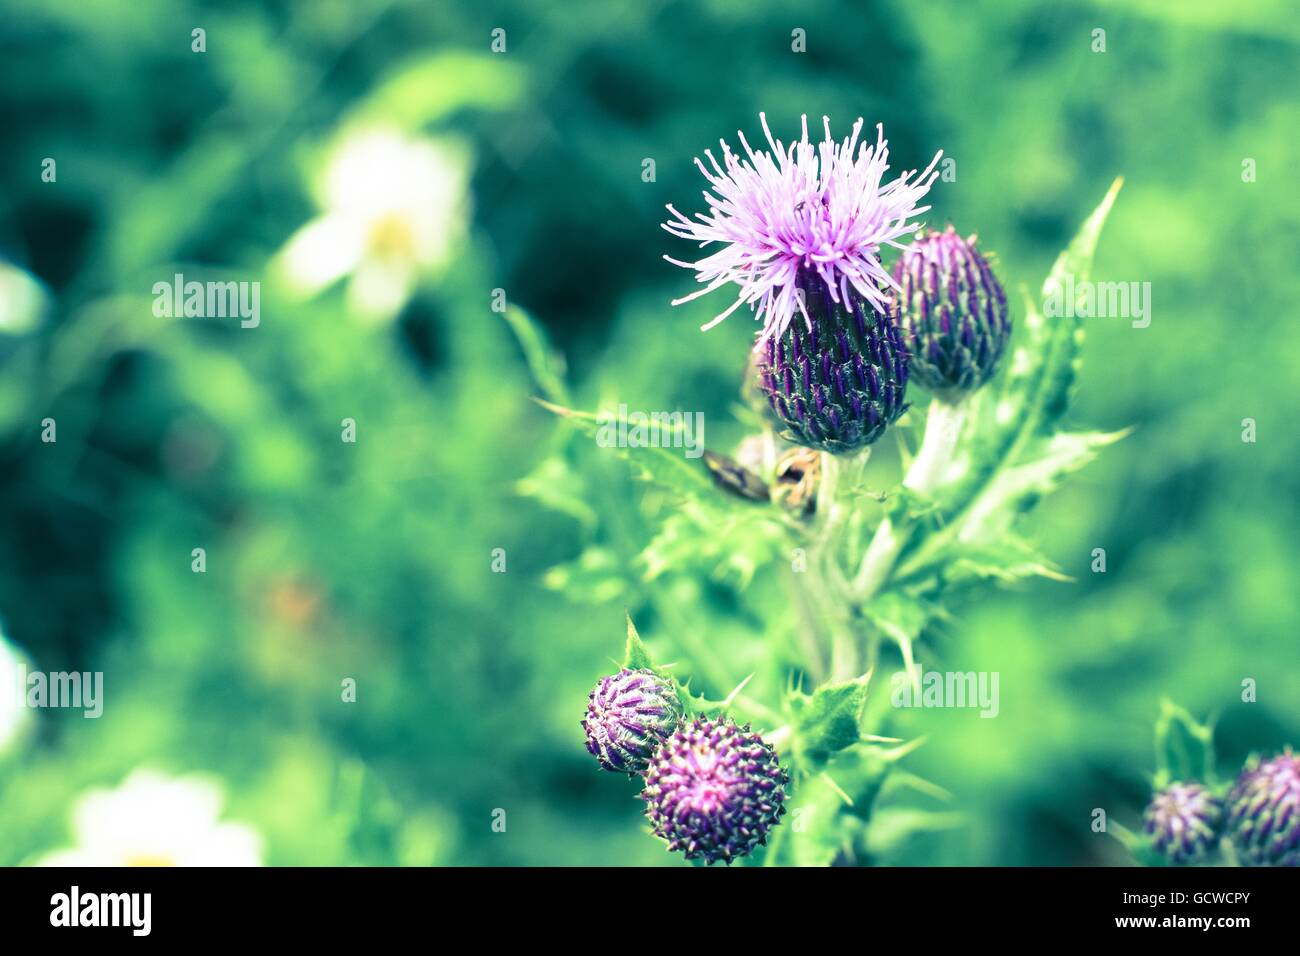 Purple thistle flower against green foilage national symbol of purple thistle flower against green foilage national symbol of scotland buycottarizona Image collections